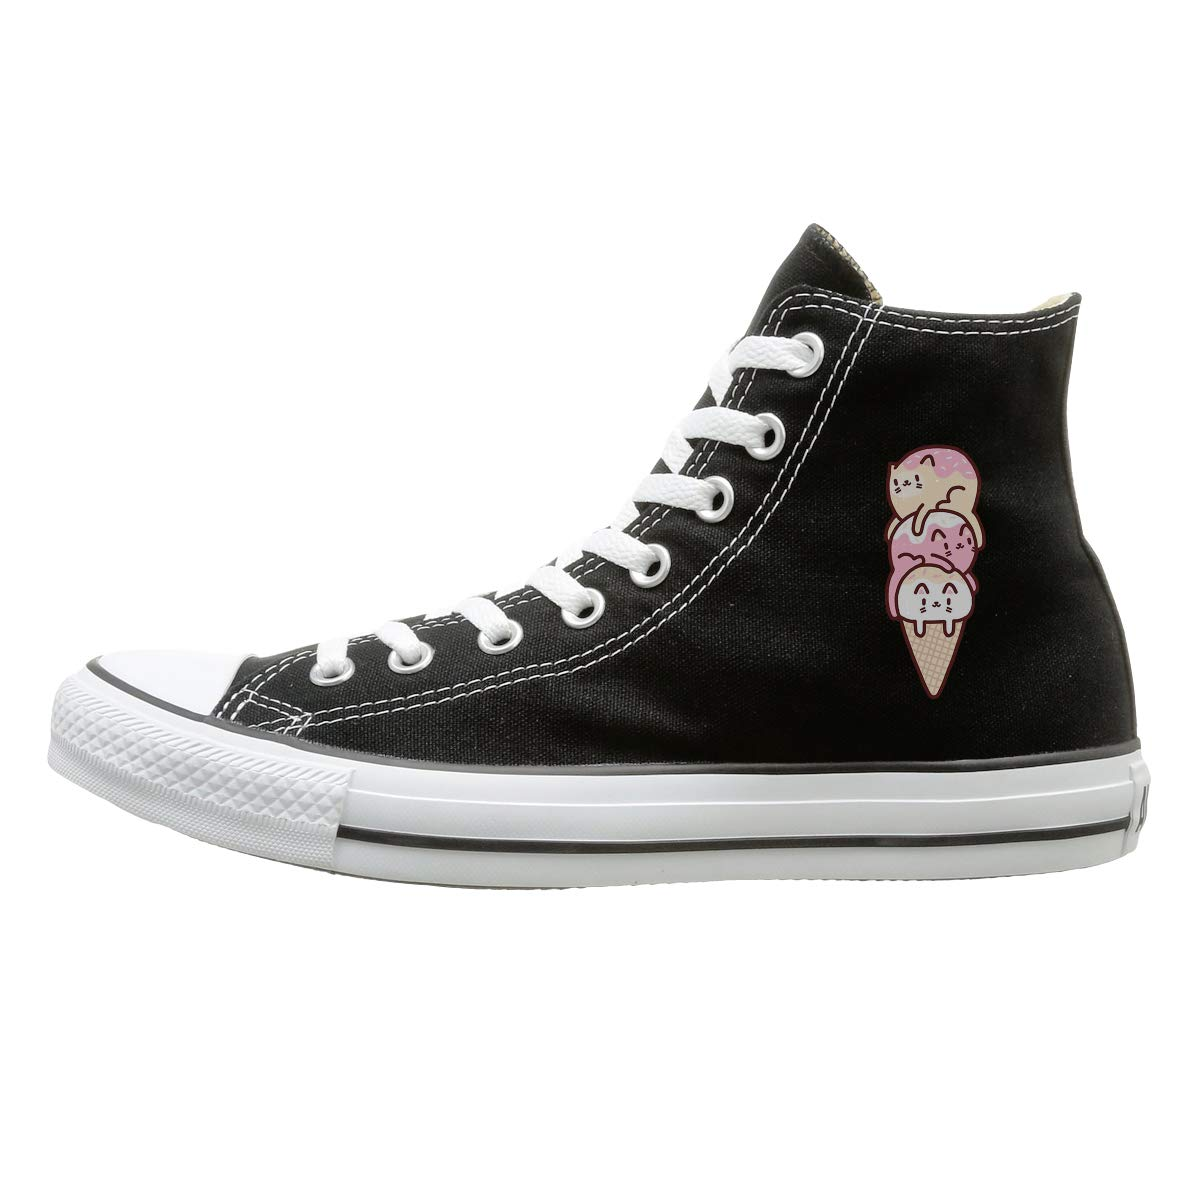 Aiguan Ice Cream Cats Canvas Shoes High Top Design Black Sneakers Unisex Style